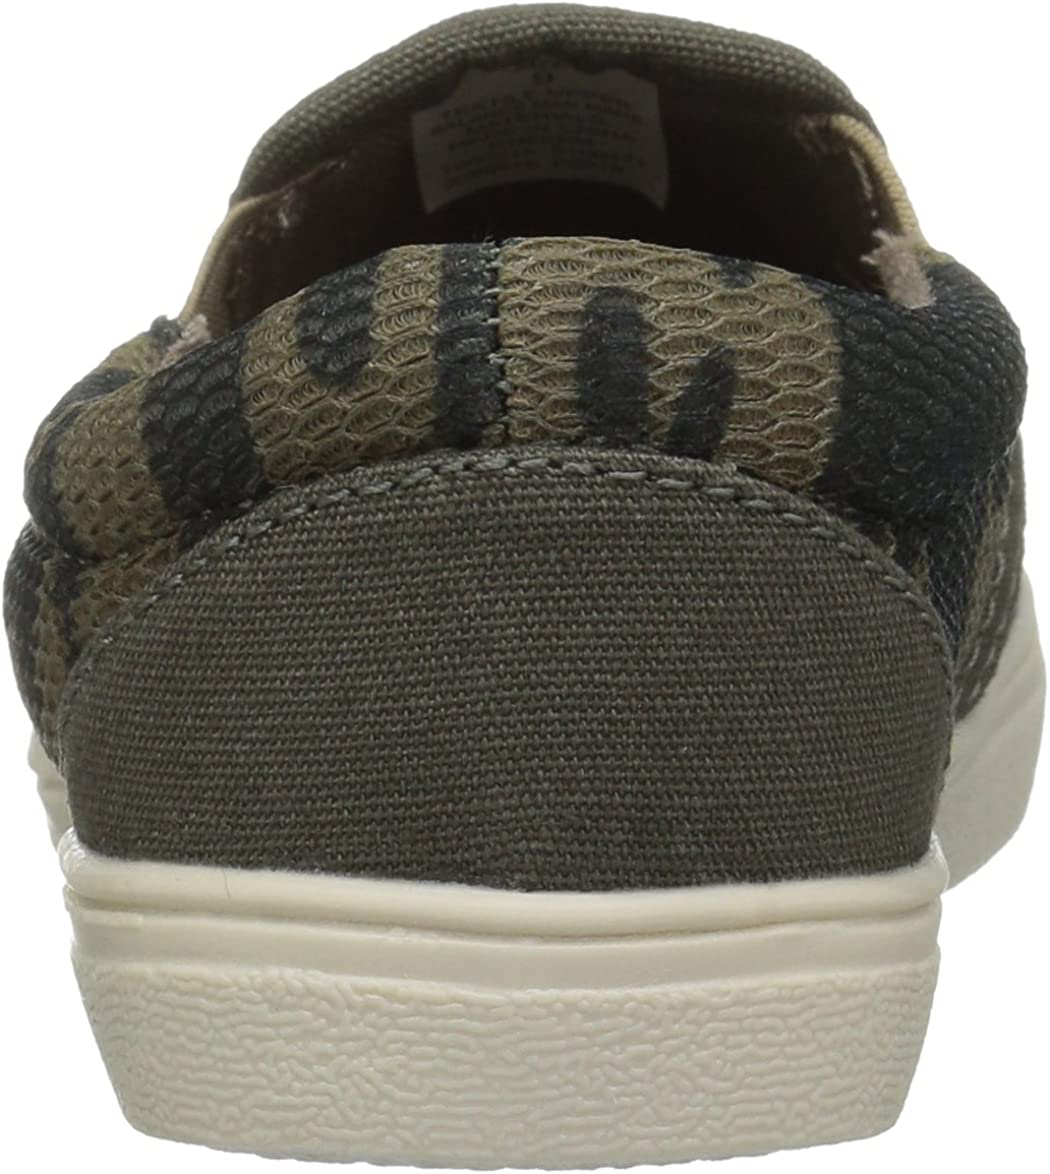 The Childrens Place Kids Toddler Camo Mesh Slip on Sneakers